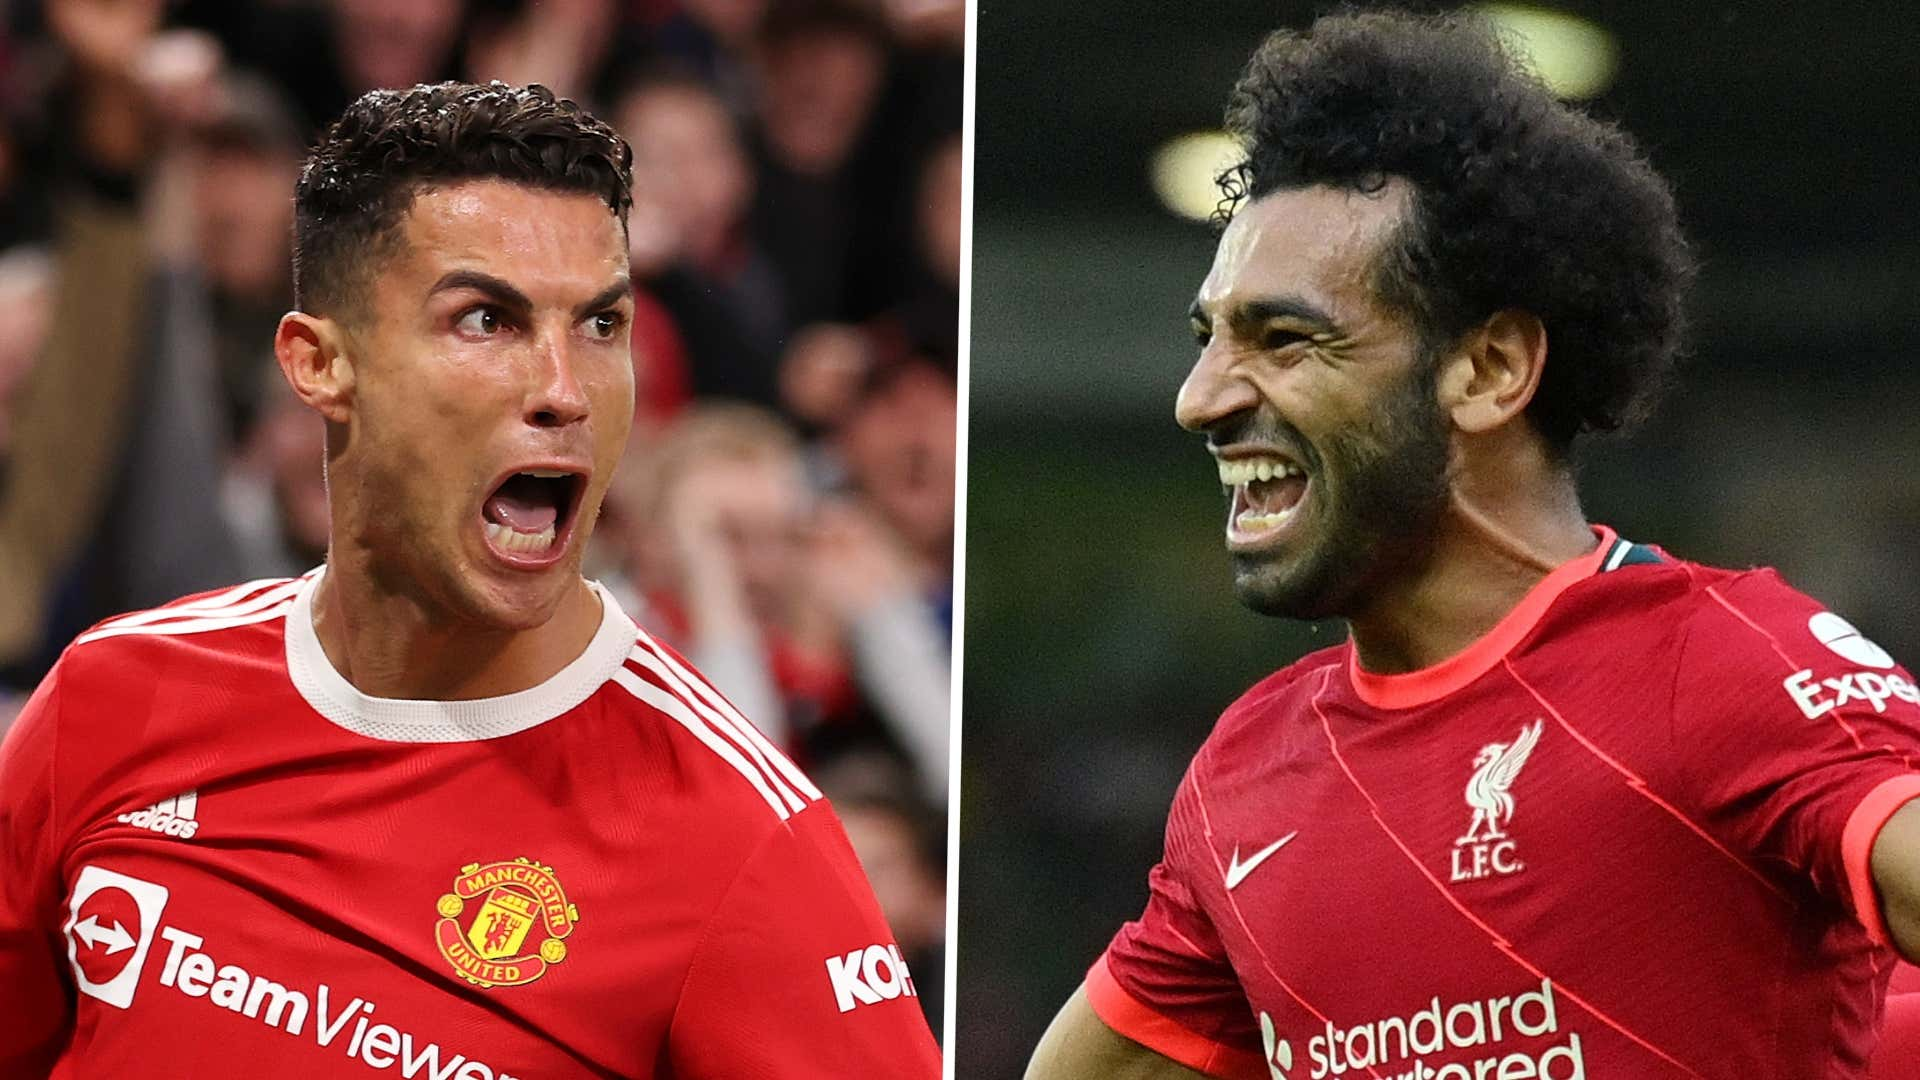 'Salah's left foot is better, Ronaldo in the air' – Klopp compares Liverpool and Manchester United superstars | Goal.com